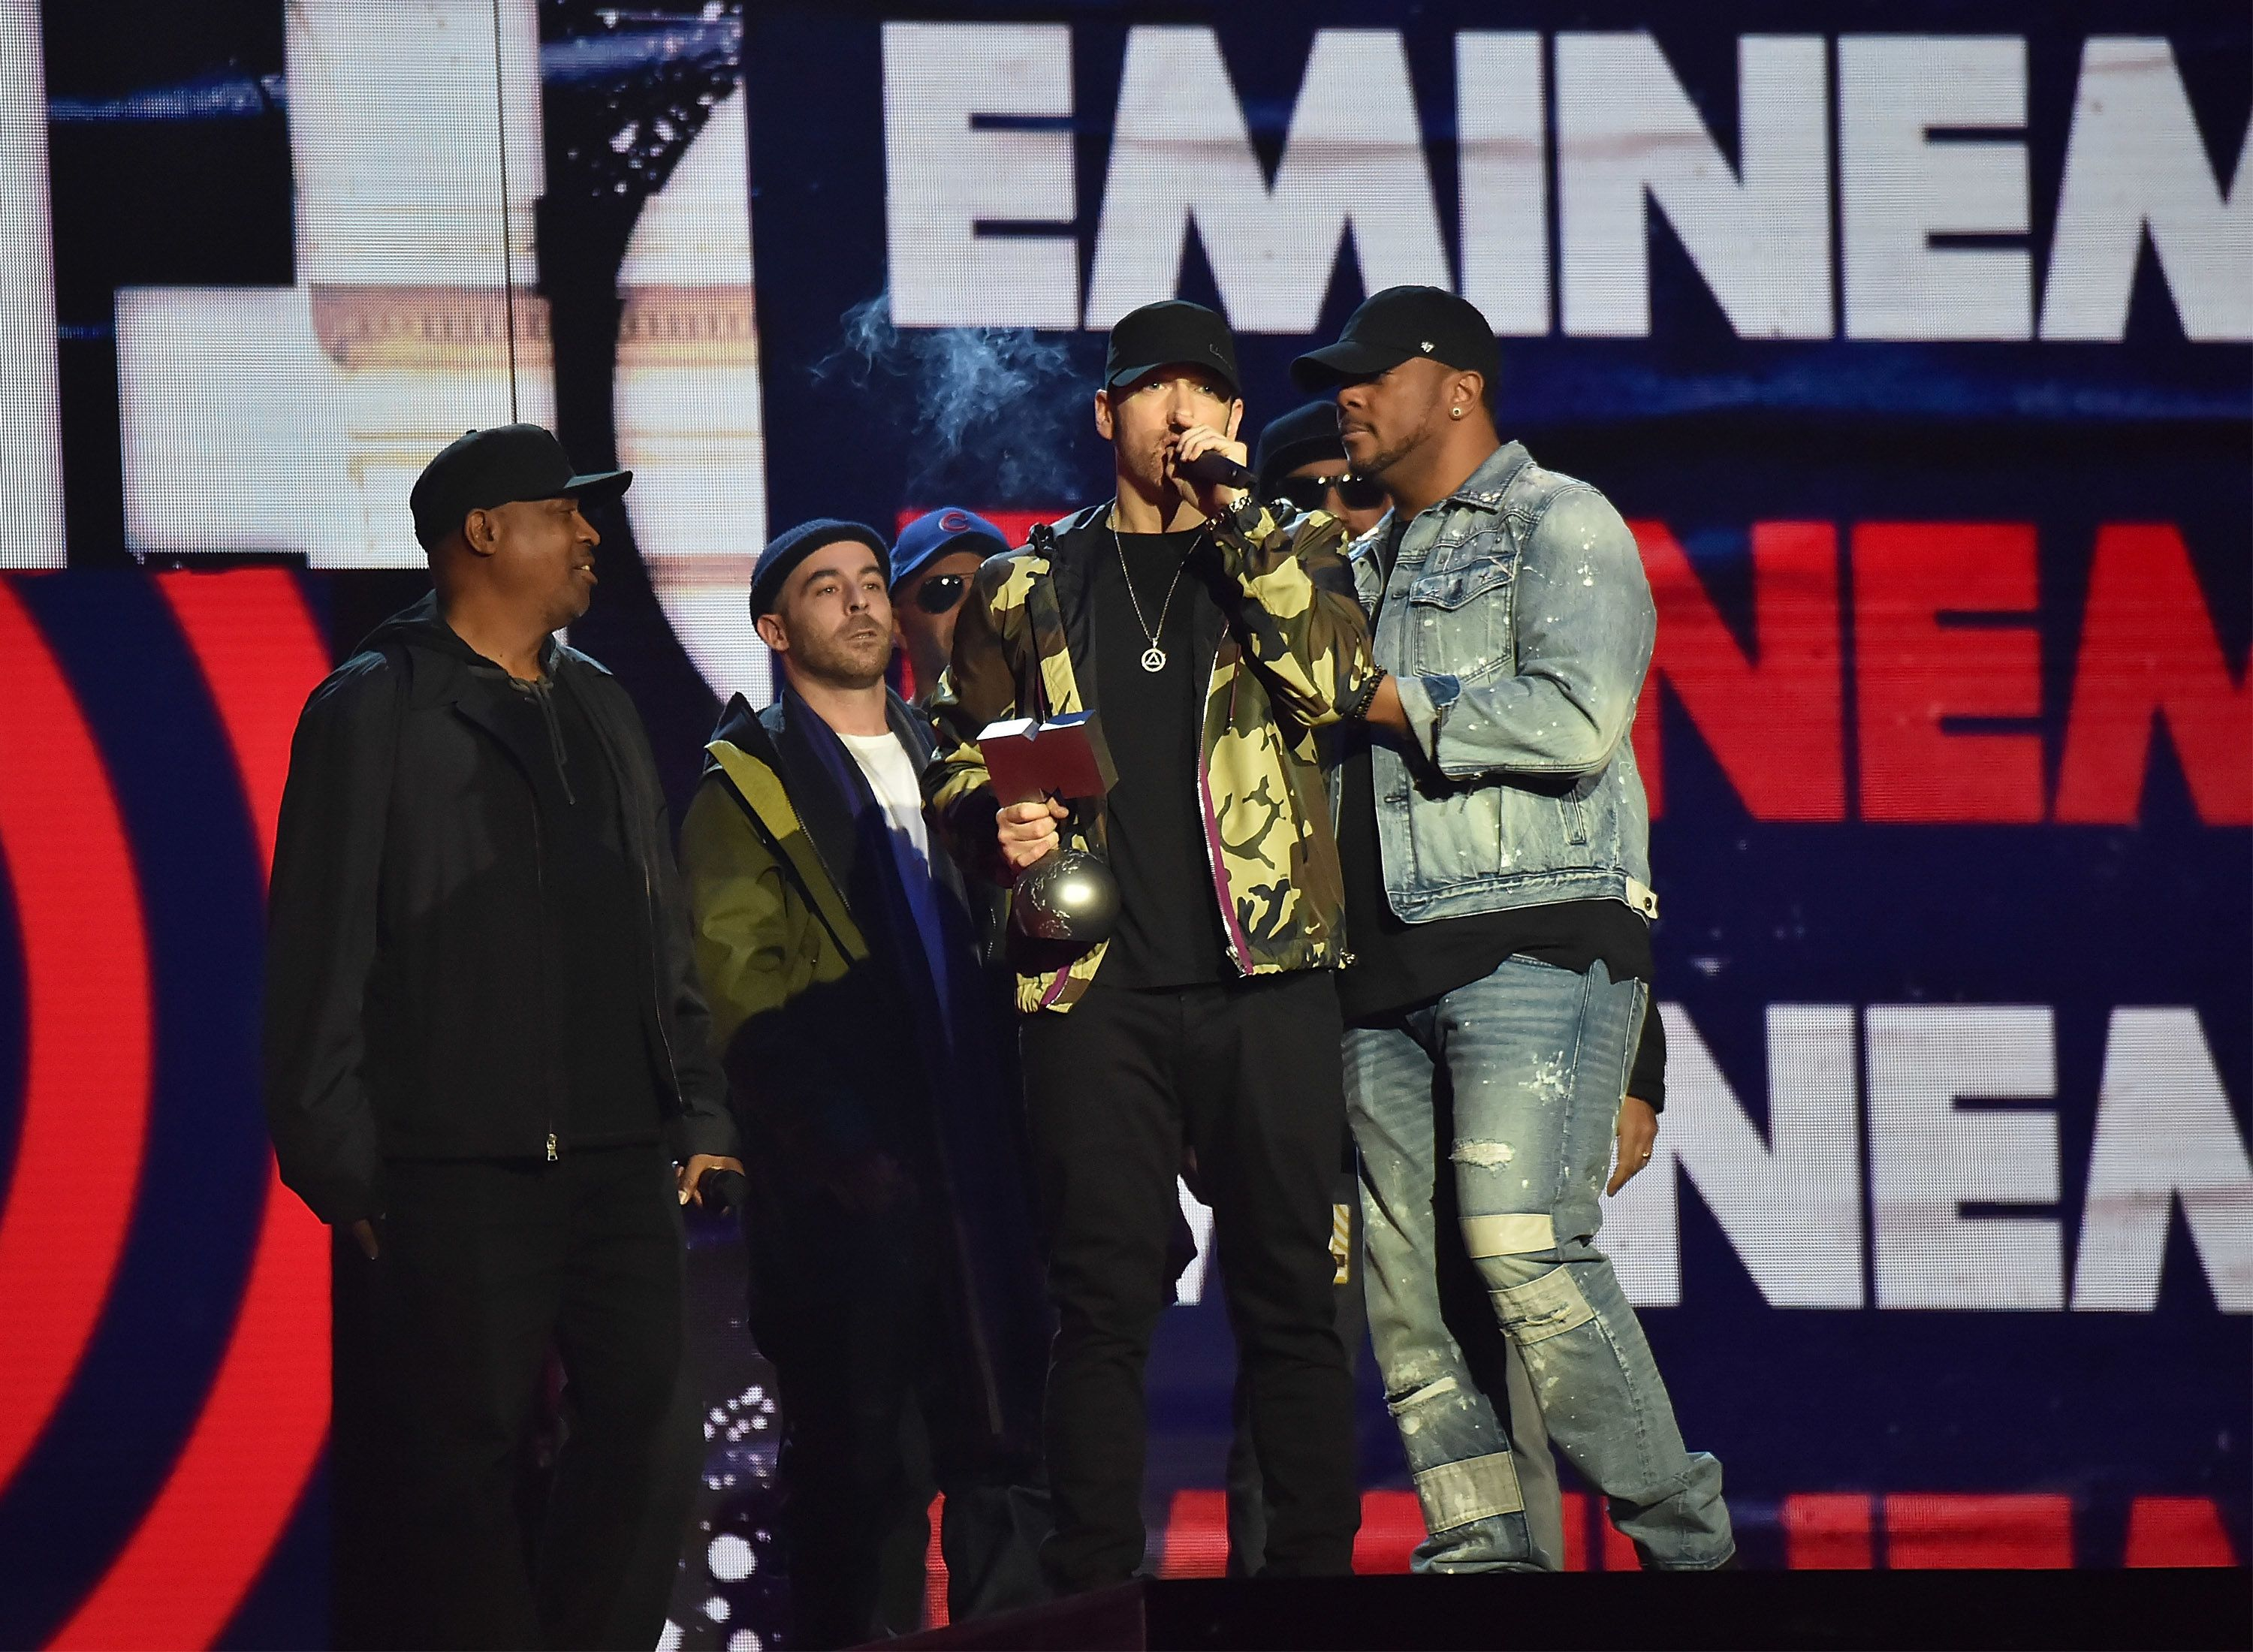 Even Eminem Seemed Confused About How He Managed To Win Best Hip-Hop Artist At The